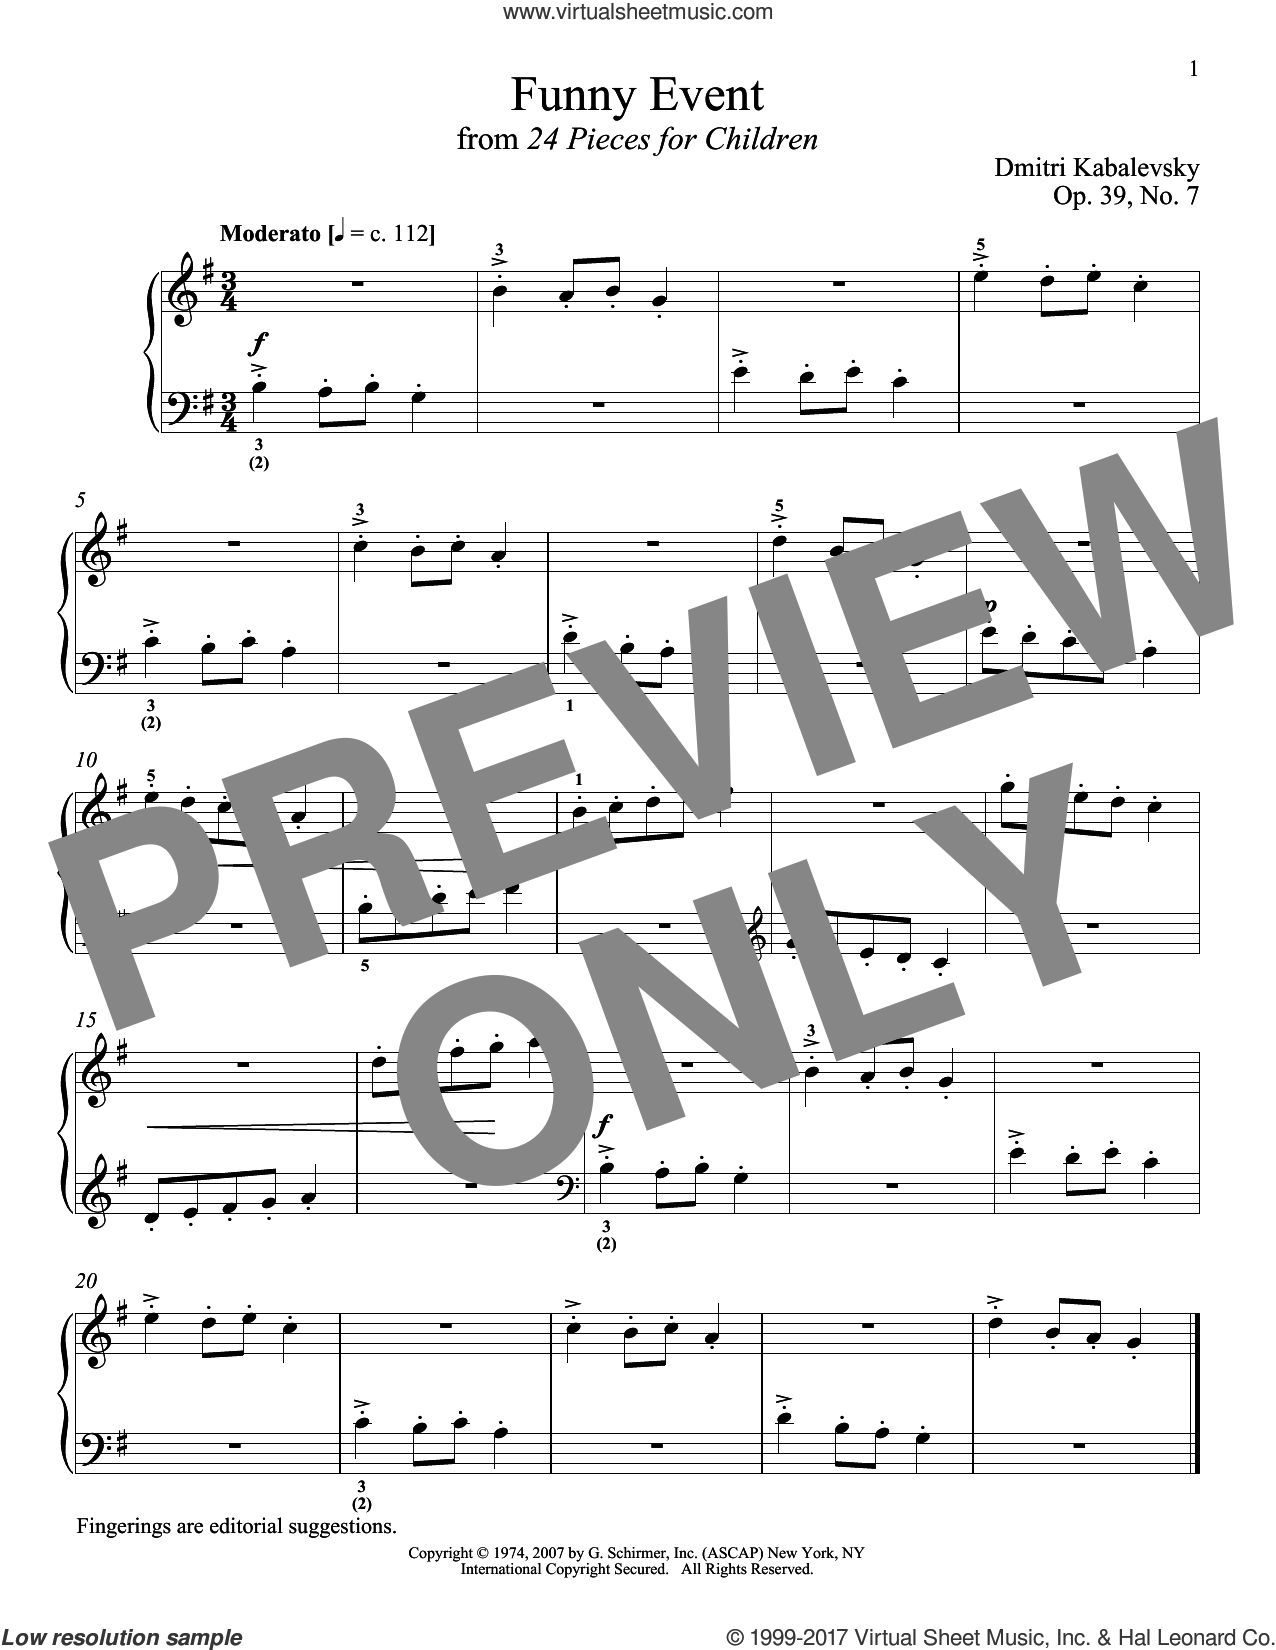 Funny Event, Op. 39, No. 7 sheet music for piano solo by Dmitri Kabalevsky and Richard Walters, classical score, intermediate skill level